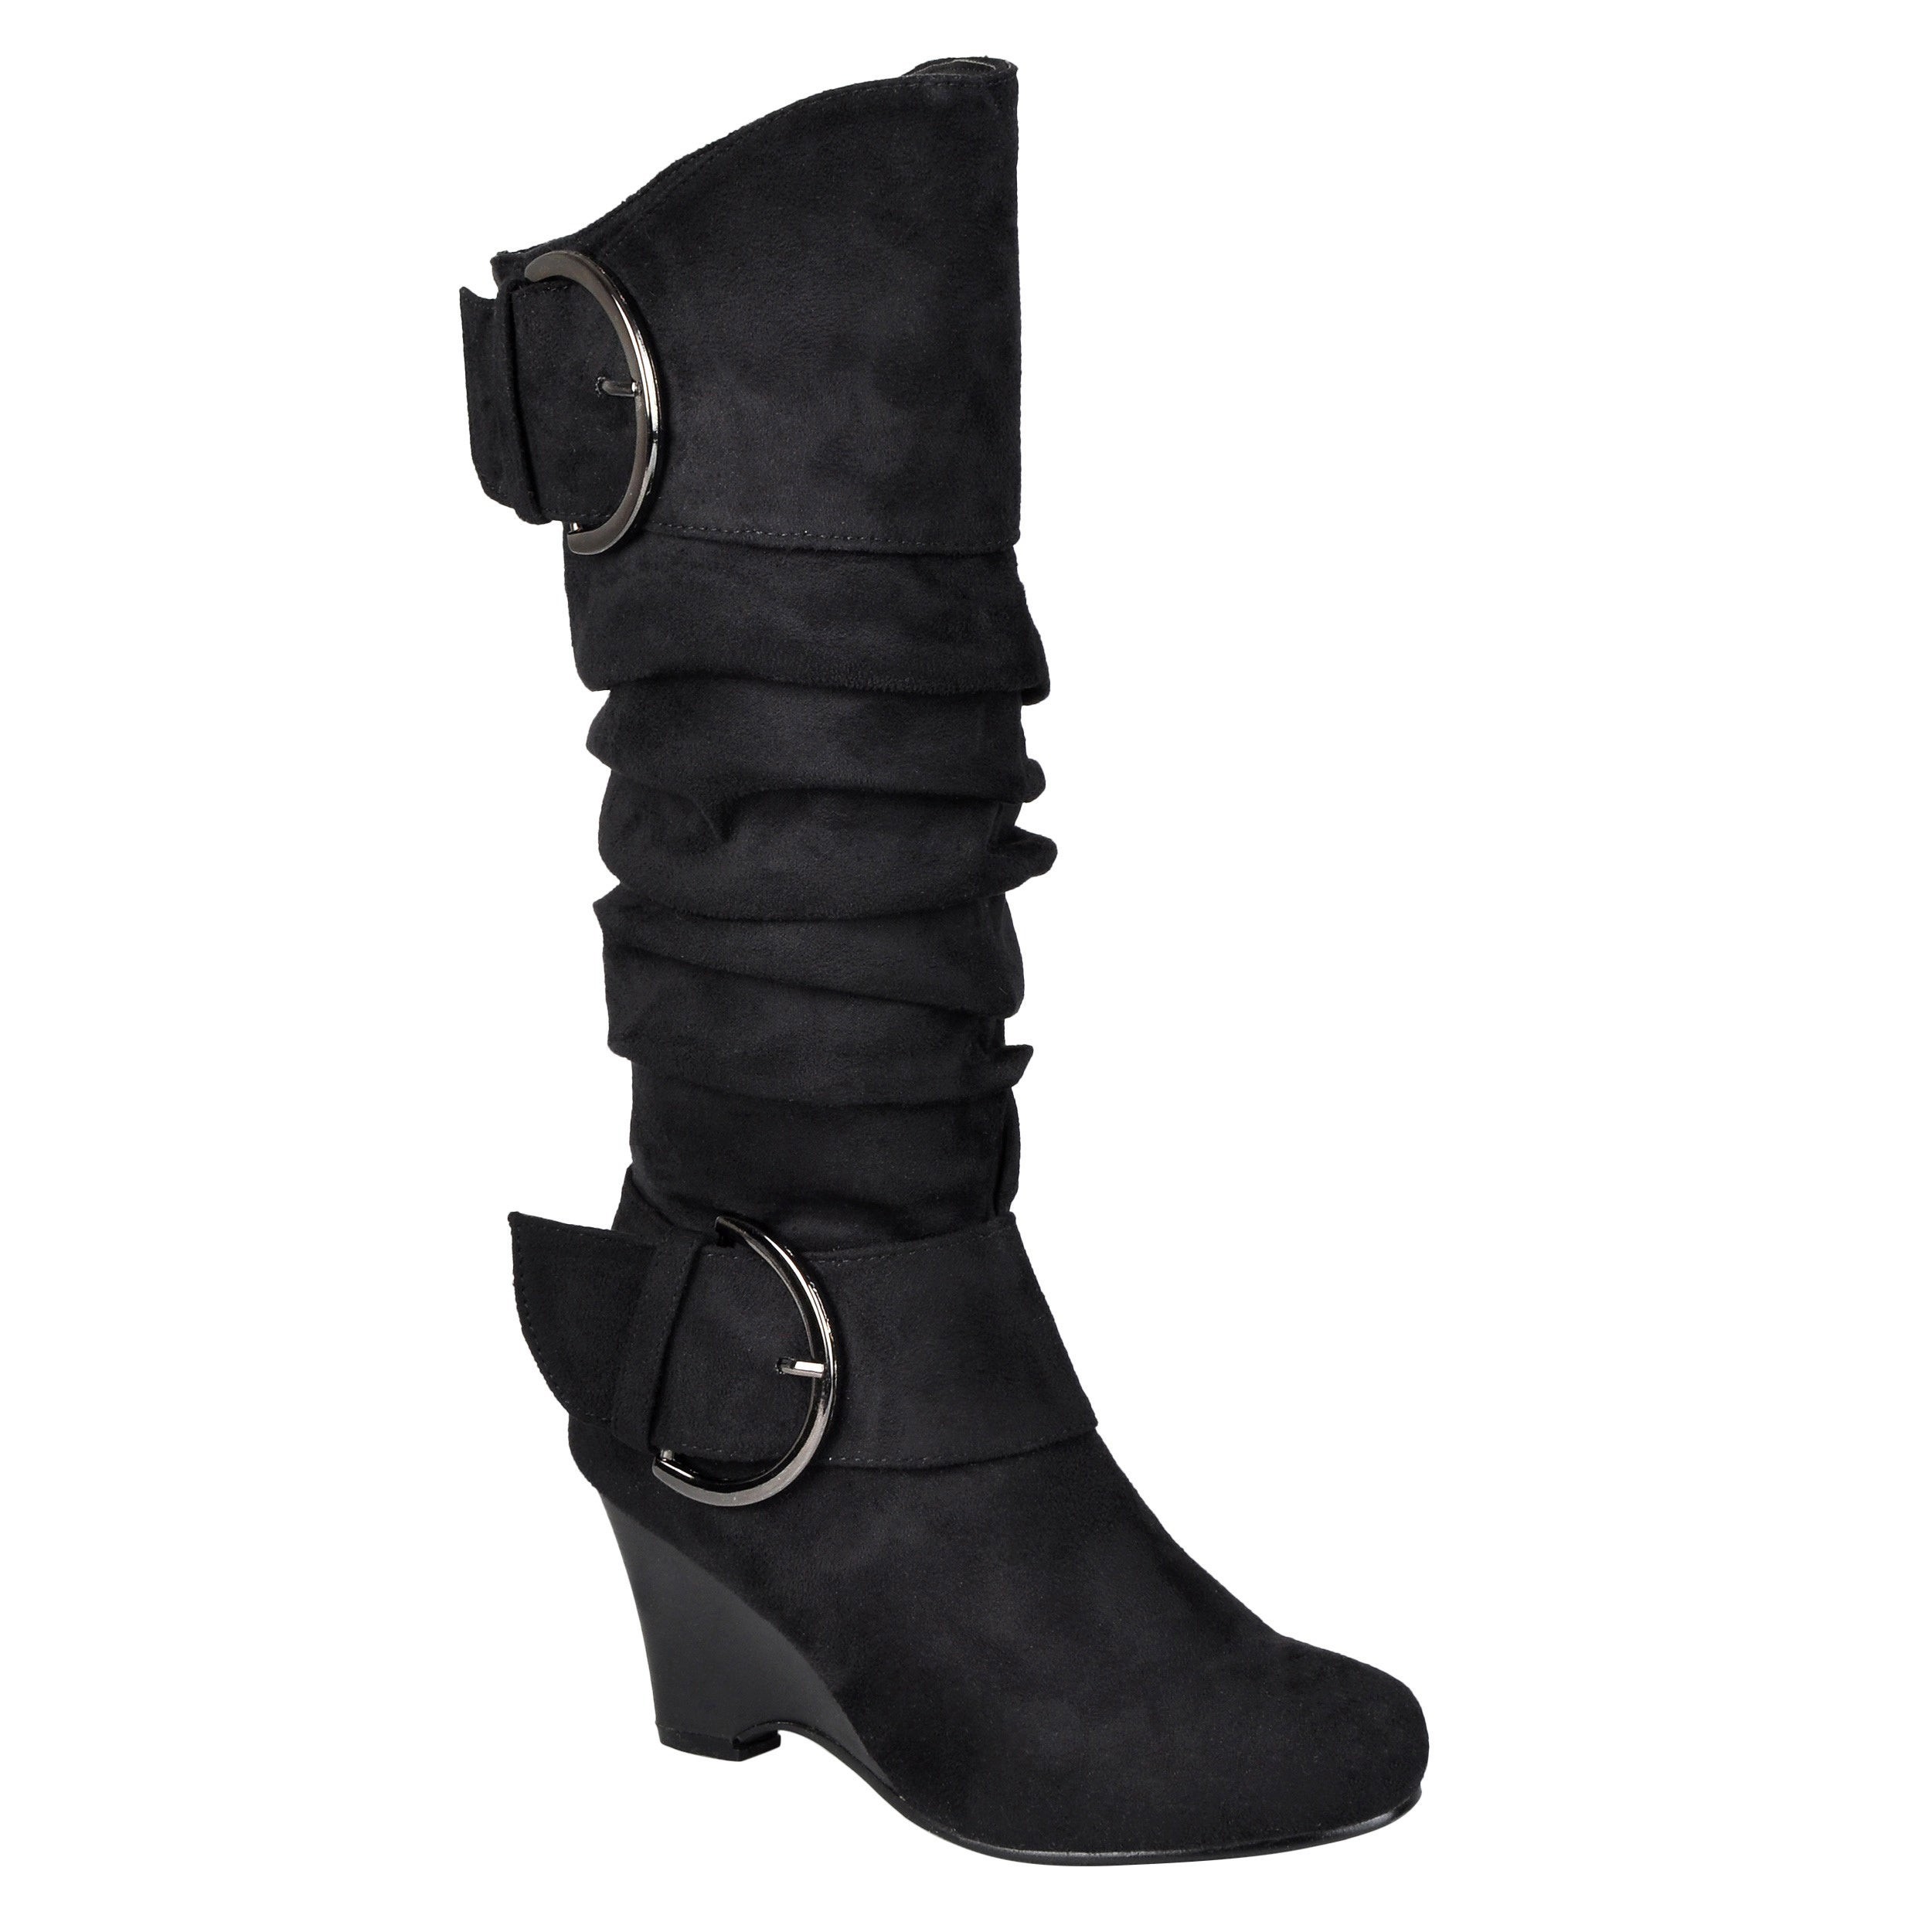 b418cbab433 Journee Collection Women s Regular and Wide-Calf  Irene-1  Buckle Slouch  Wedge Knee-High Boots